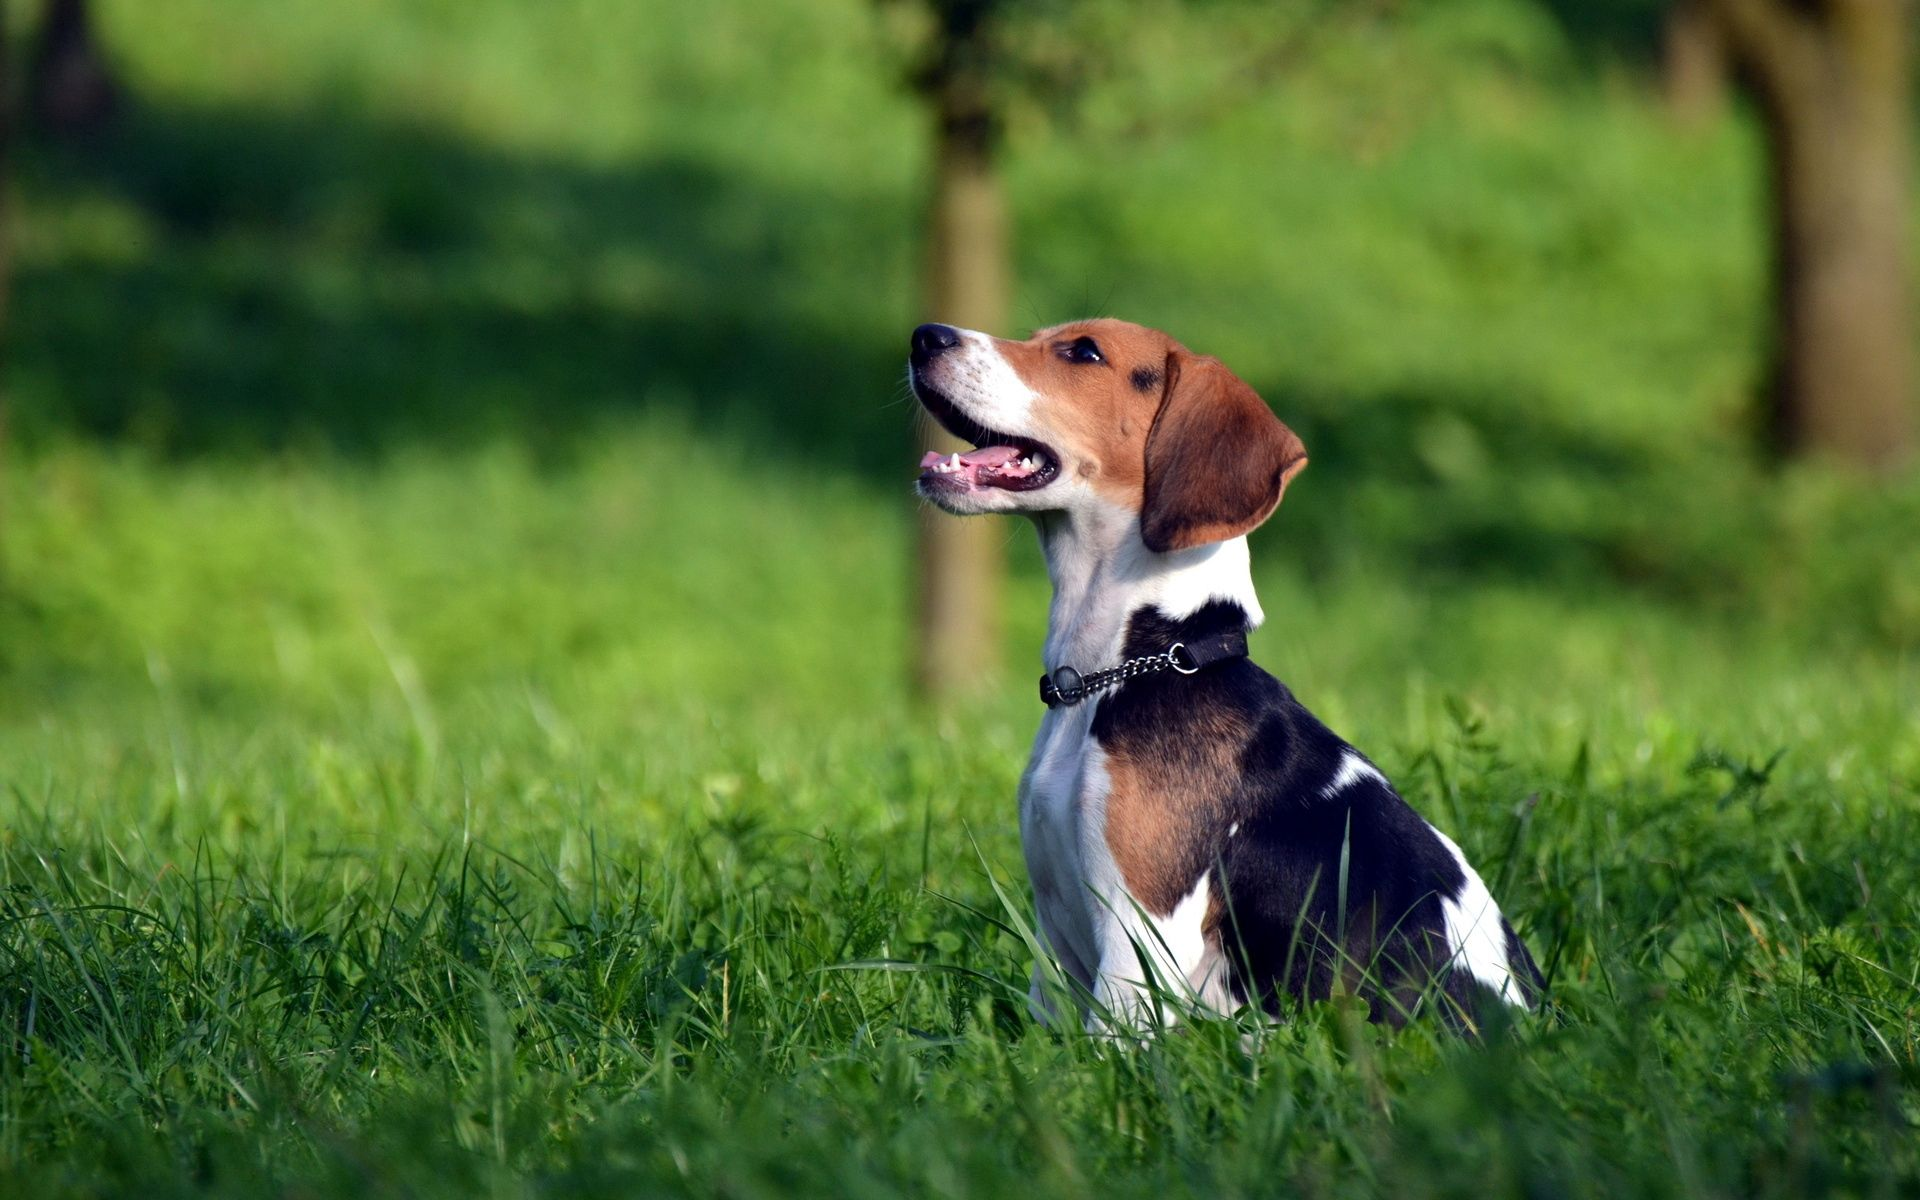 153444 download wallpaper Animals, Beagle, Spotted, Spotty, Grass, Playful, Puppy screensavers and pictures for free